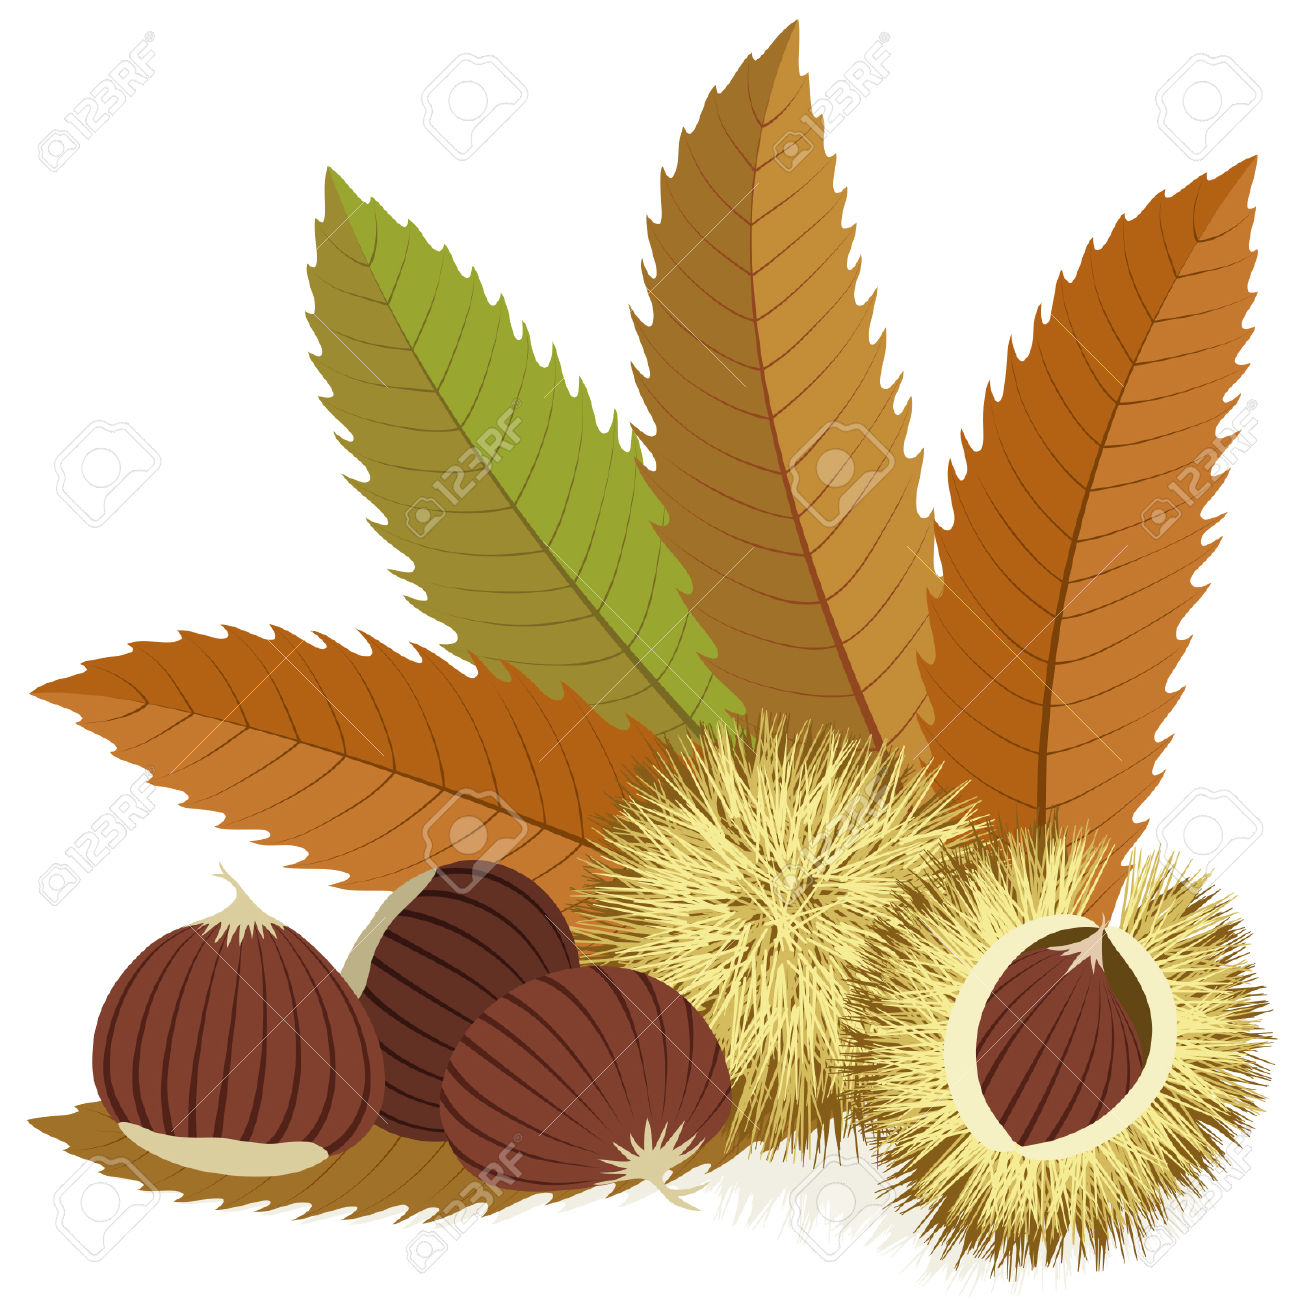 Sweet Chestnuts With Leaves And Spiny Husks On White Background.